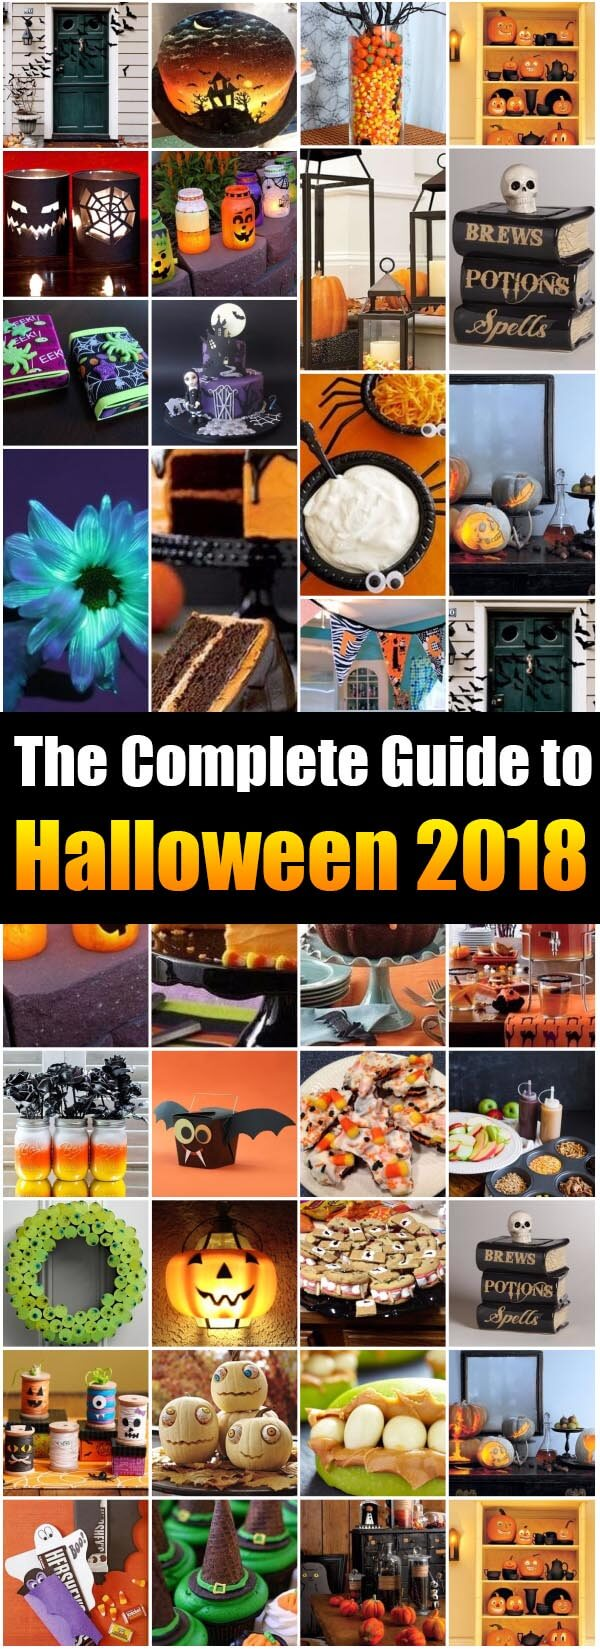 The Complete Guide to Halloween 2018 - Holiday Vault